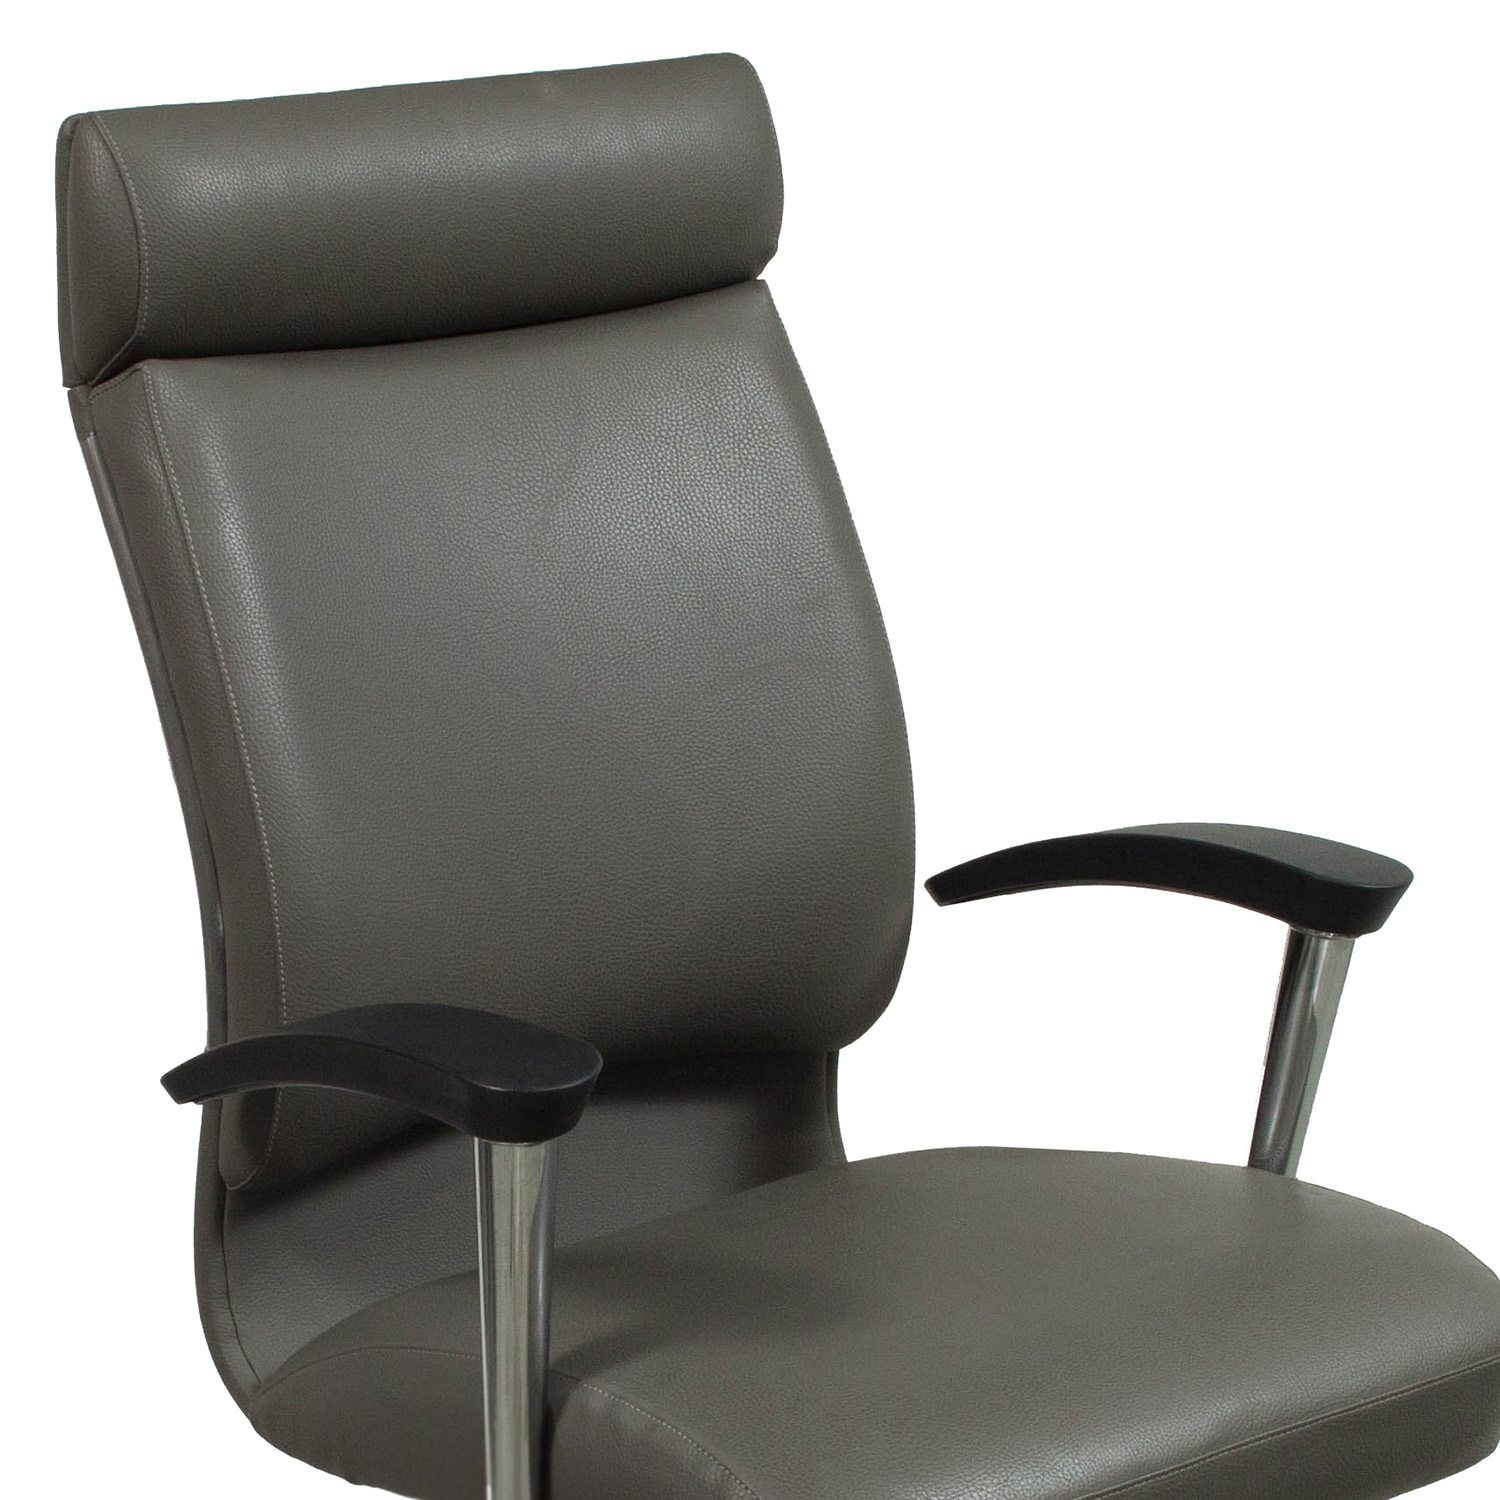 Leather Conference Room Chairs Ofs Cs2 Used High Back Leather Conference Chair Gray